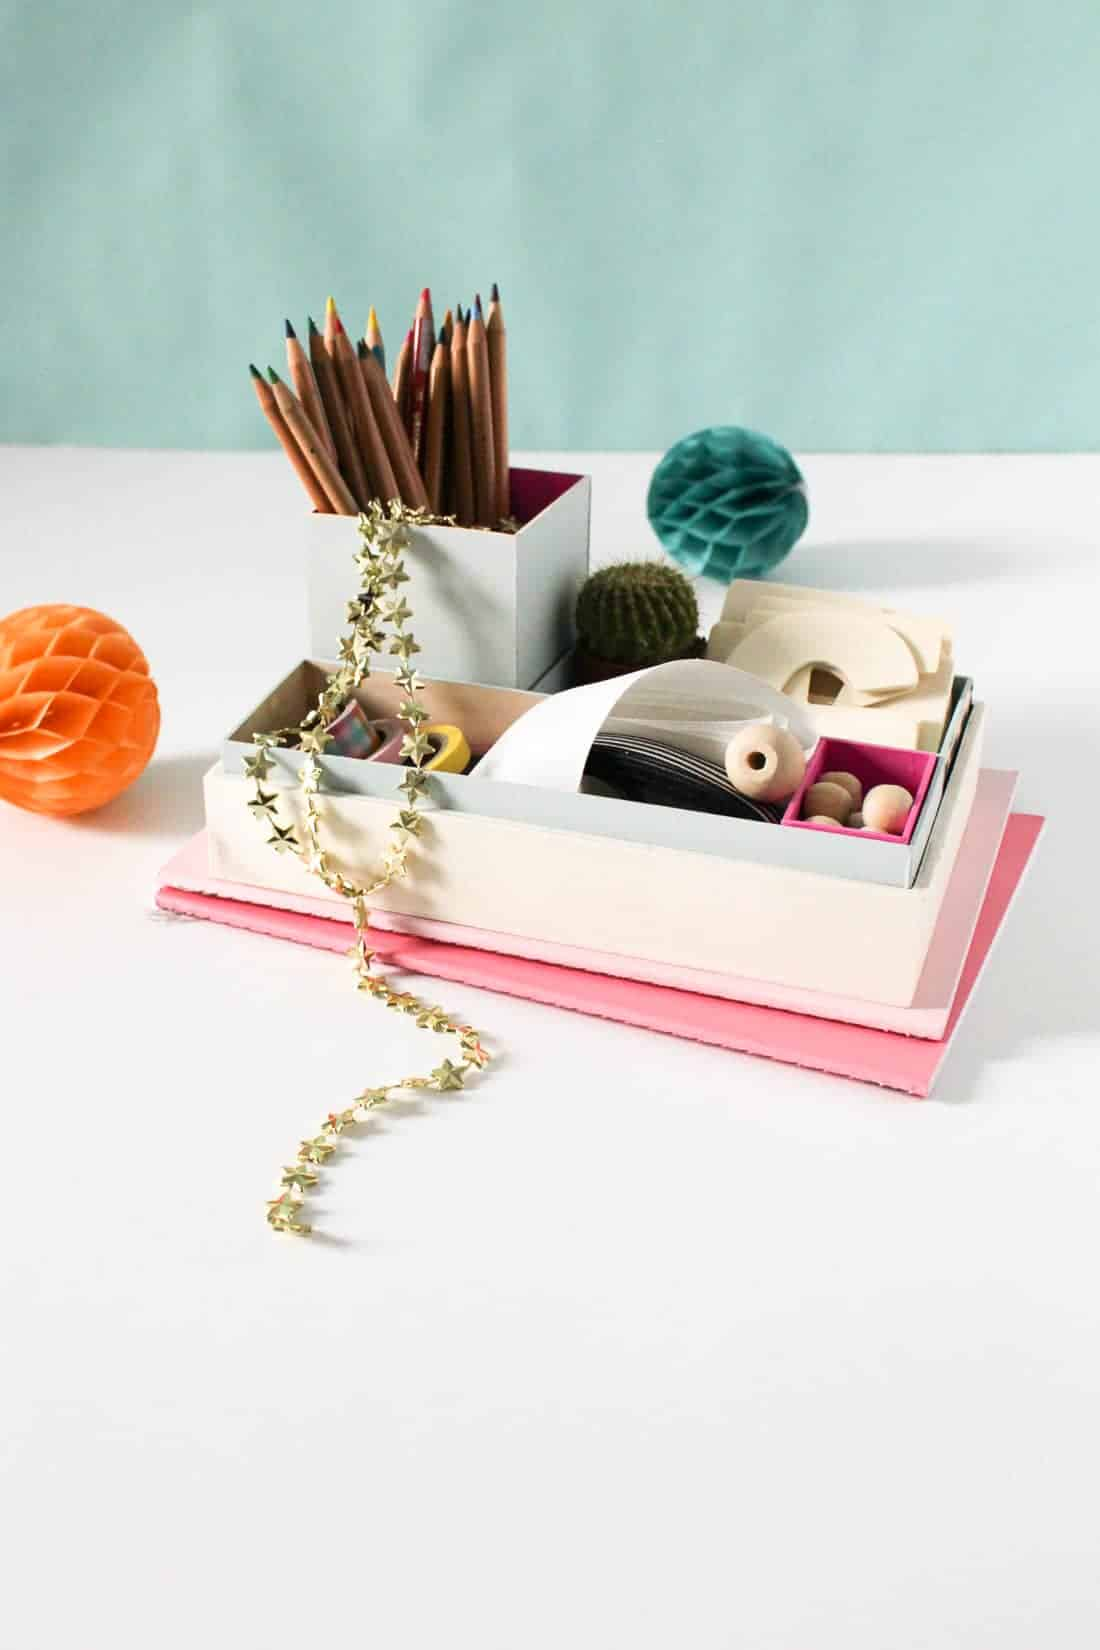 DIY Nesting Desk Organizer on Sugar & Cloth